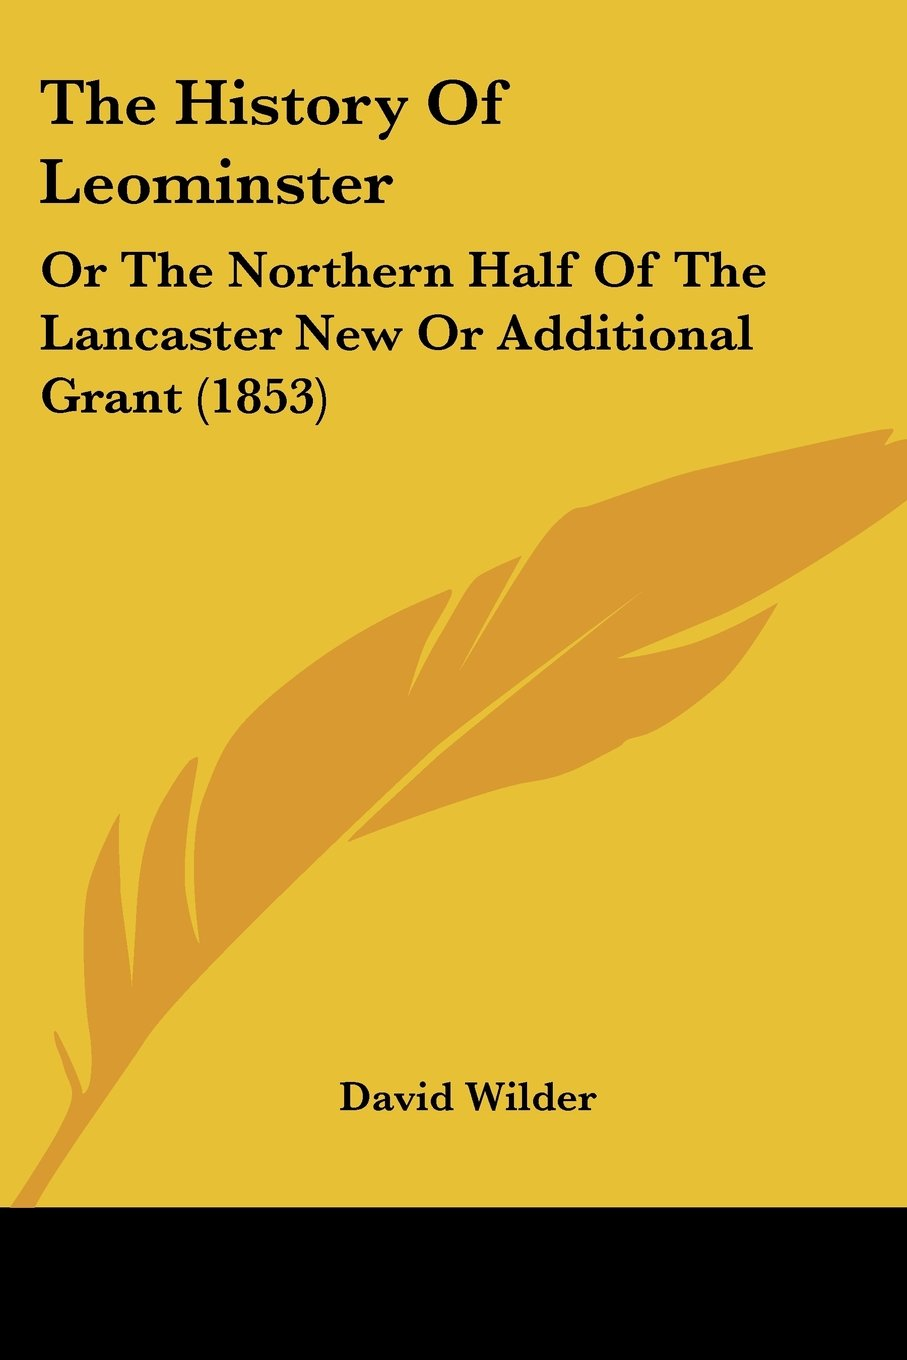 The History Of Leominster: Or The Northern Half Of The Lancaster New Or Additional Grant (1853) ebook